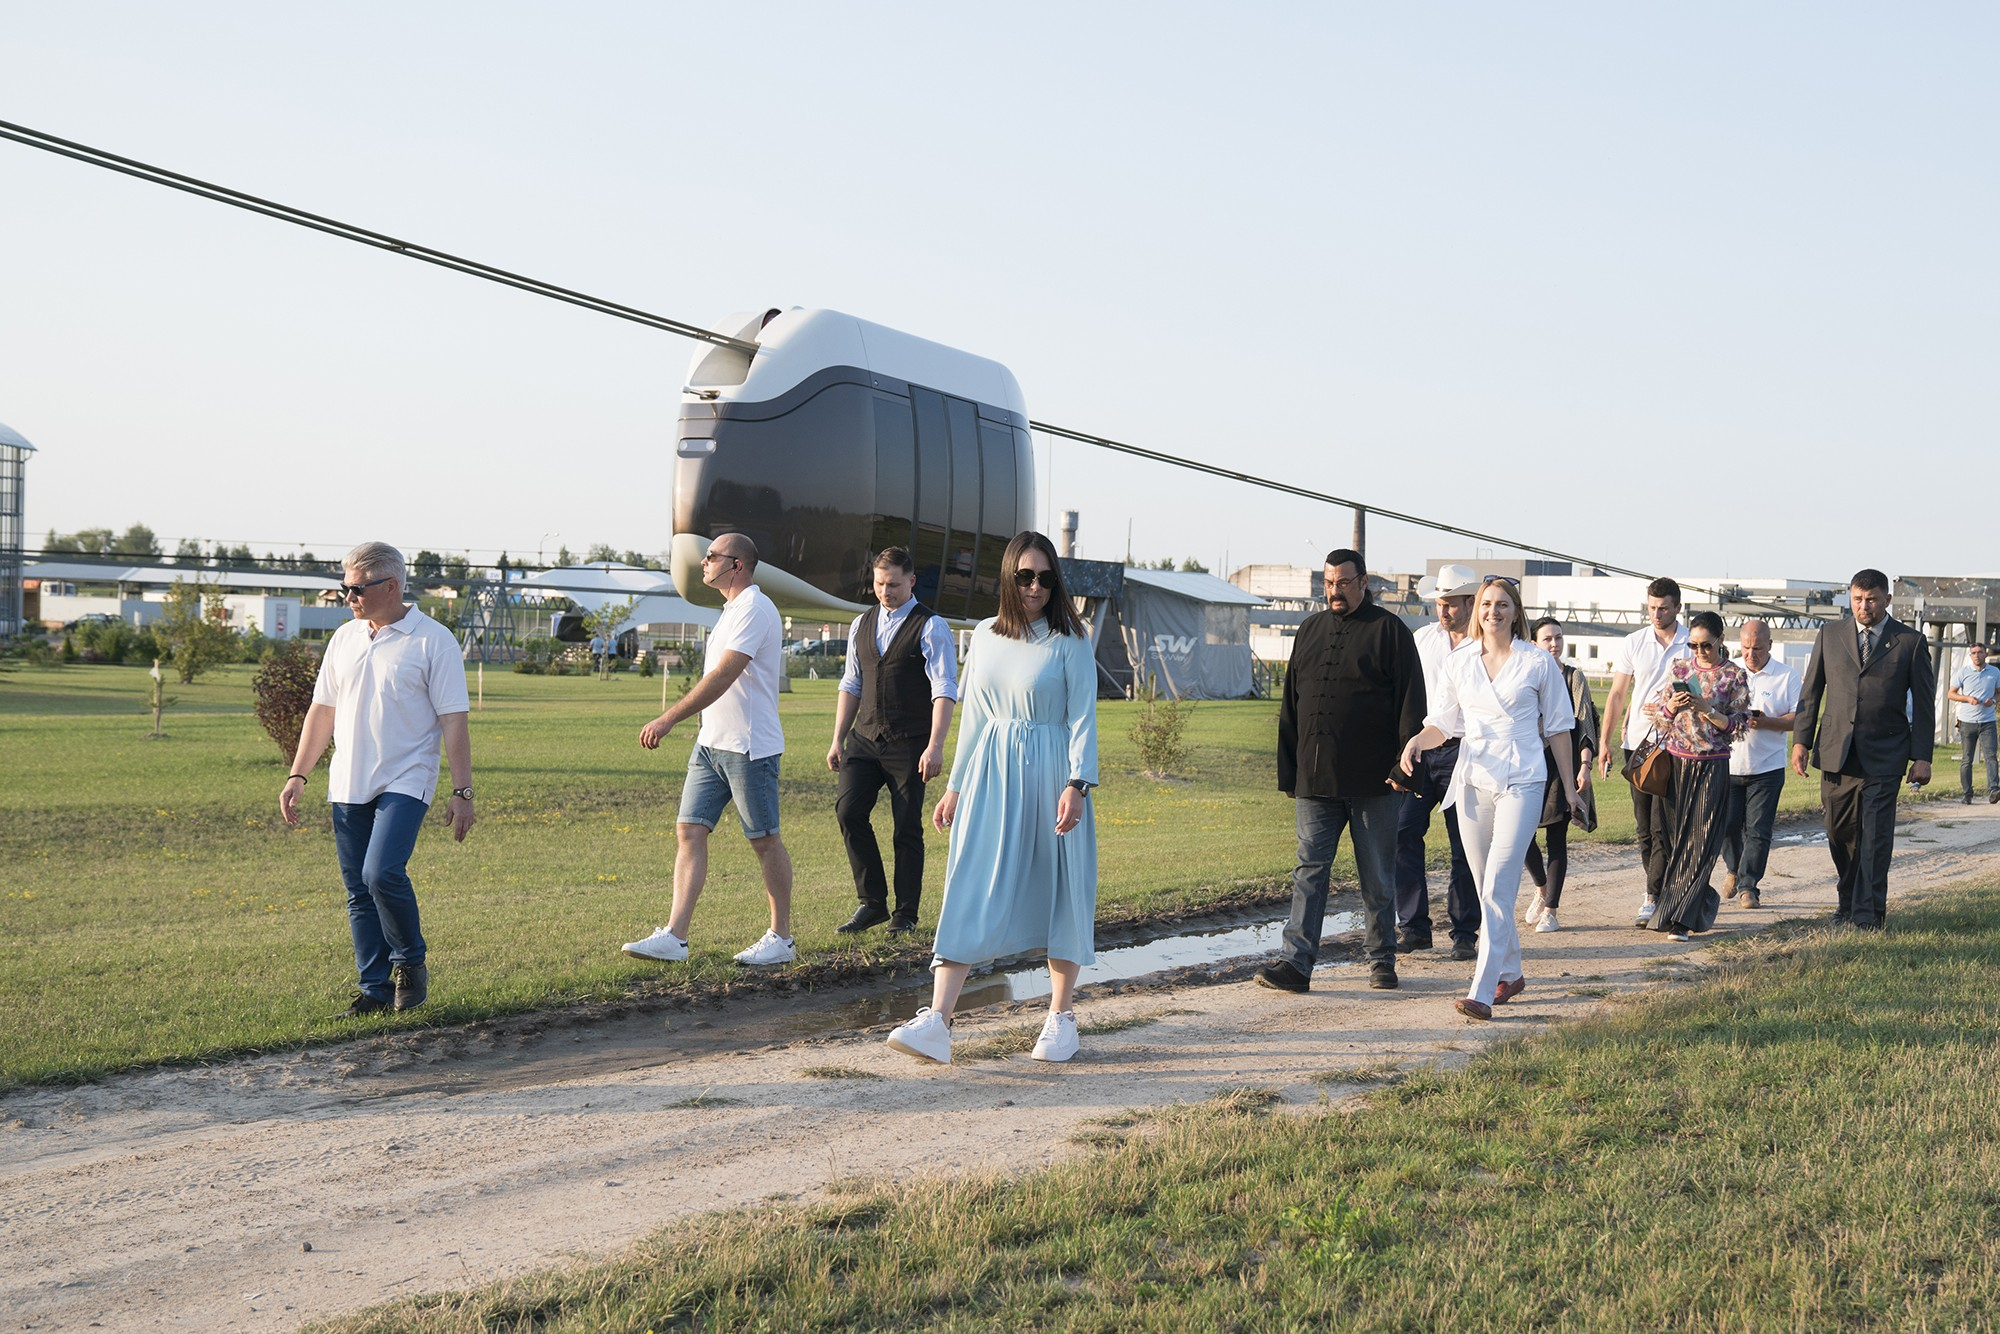 SkyWay, Sky Way, SkyWay in Belarus Yunitsky, string transport, EcoTechnoPark, Steven Seagal, visit